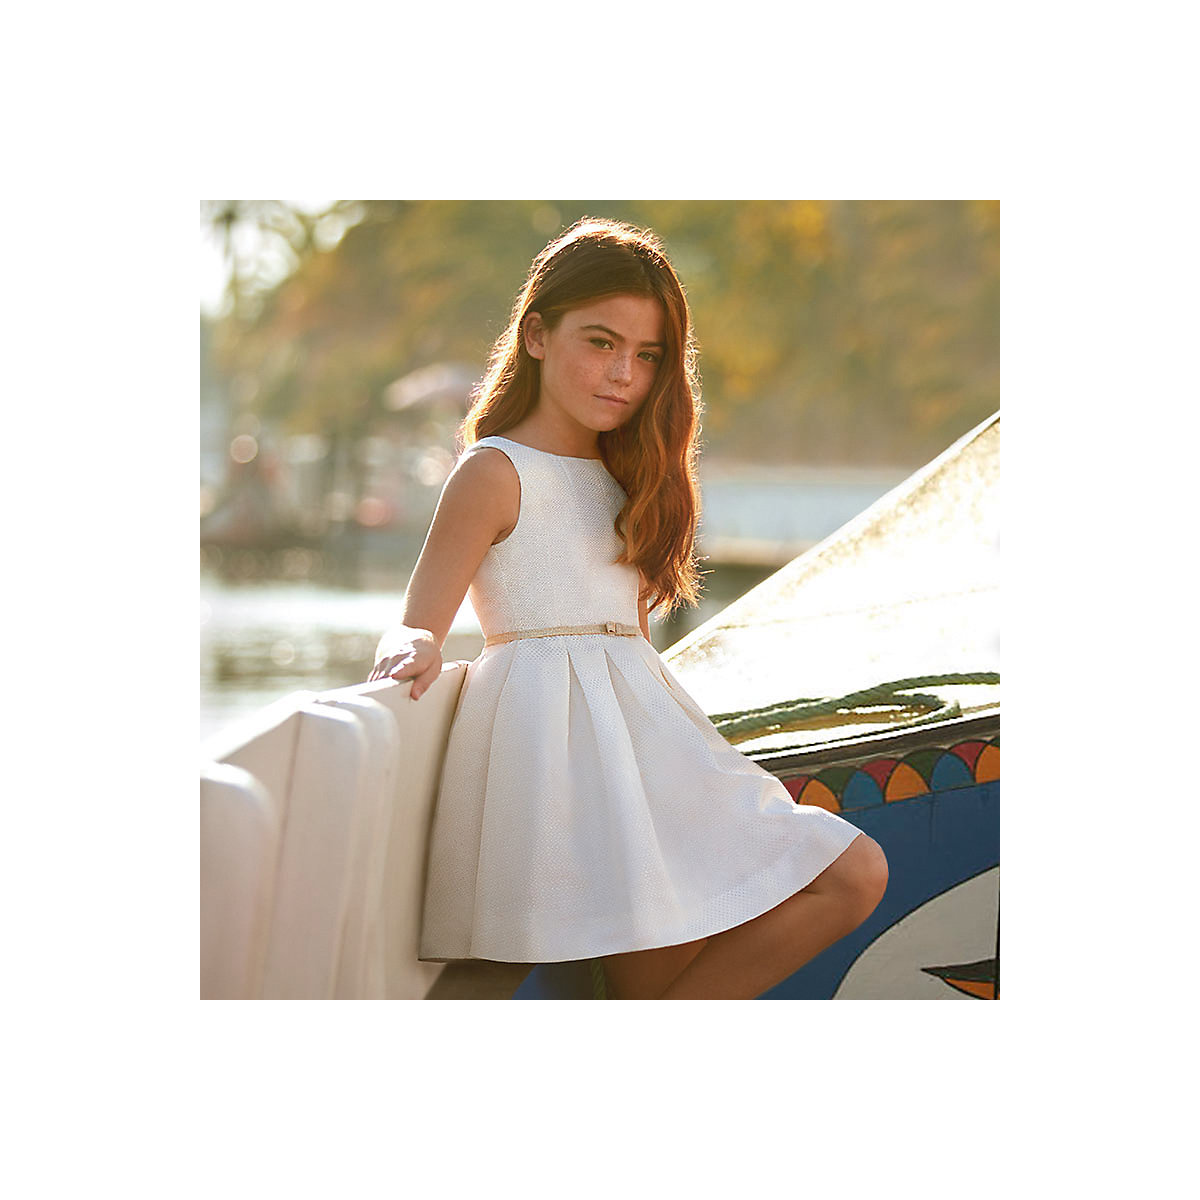 MAYORAL Dresses 10678771 Girl Children Party fitted pleated skirt Beige Polyester Preppy Style Solid Knee-Length Sleeveless Sleeve